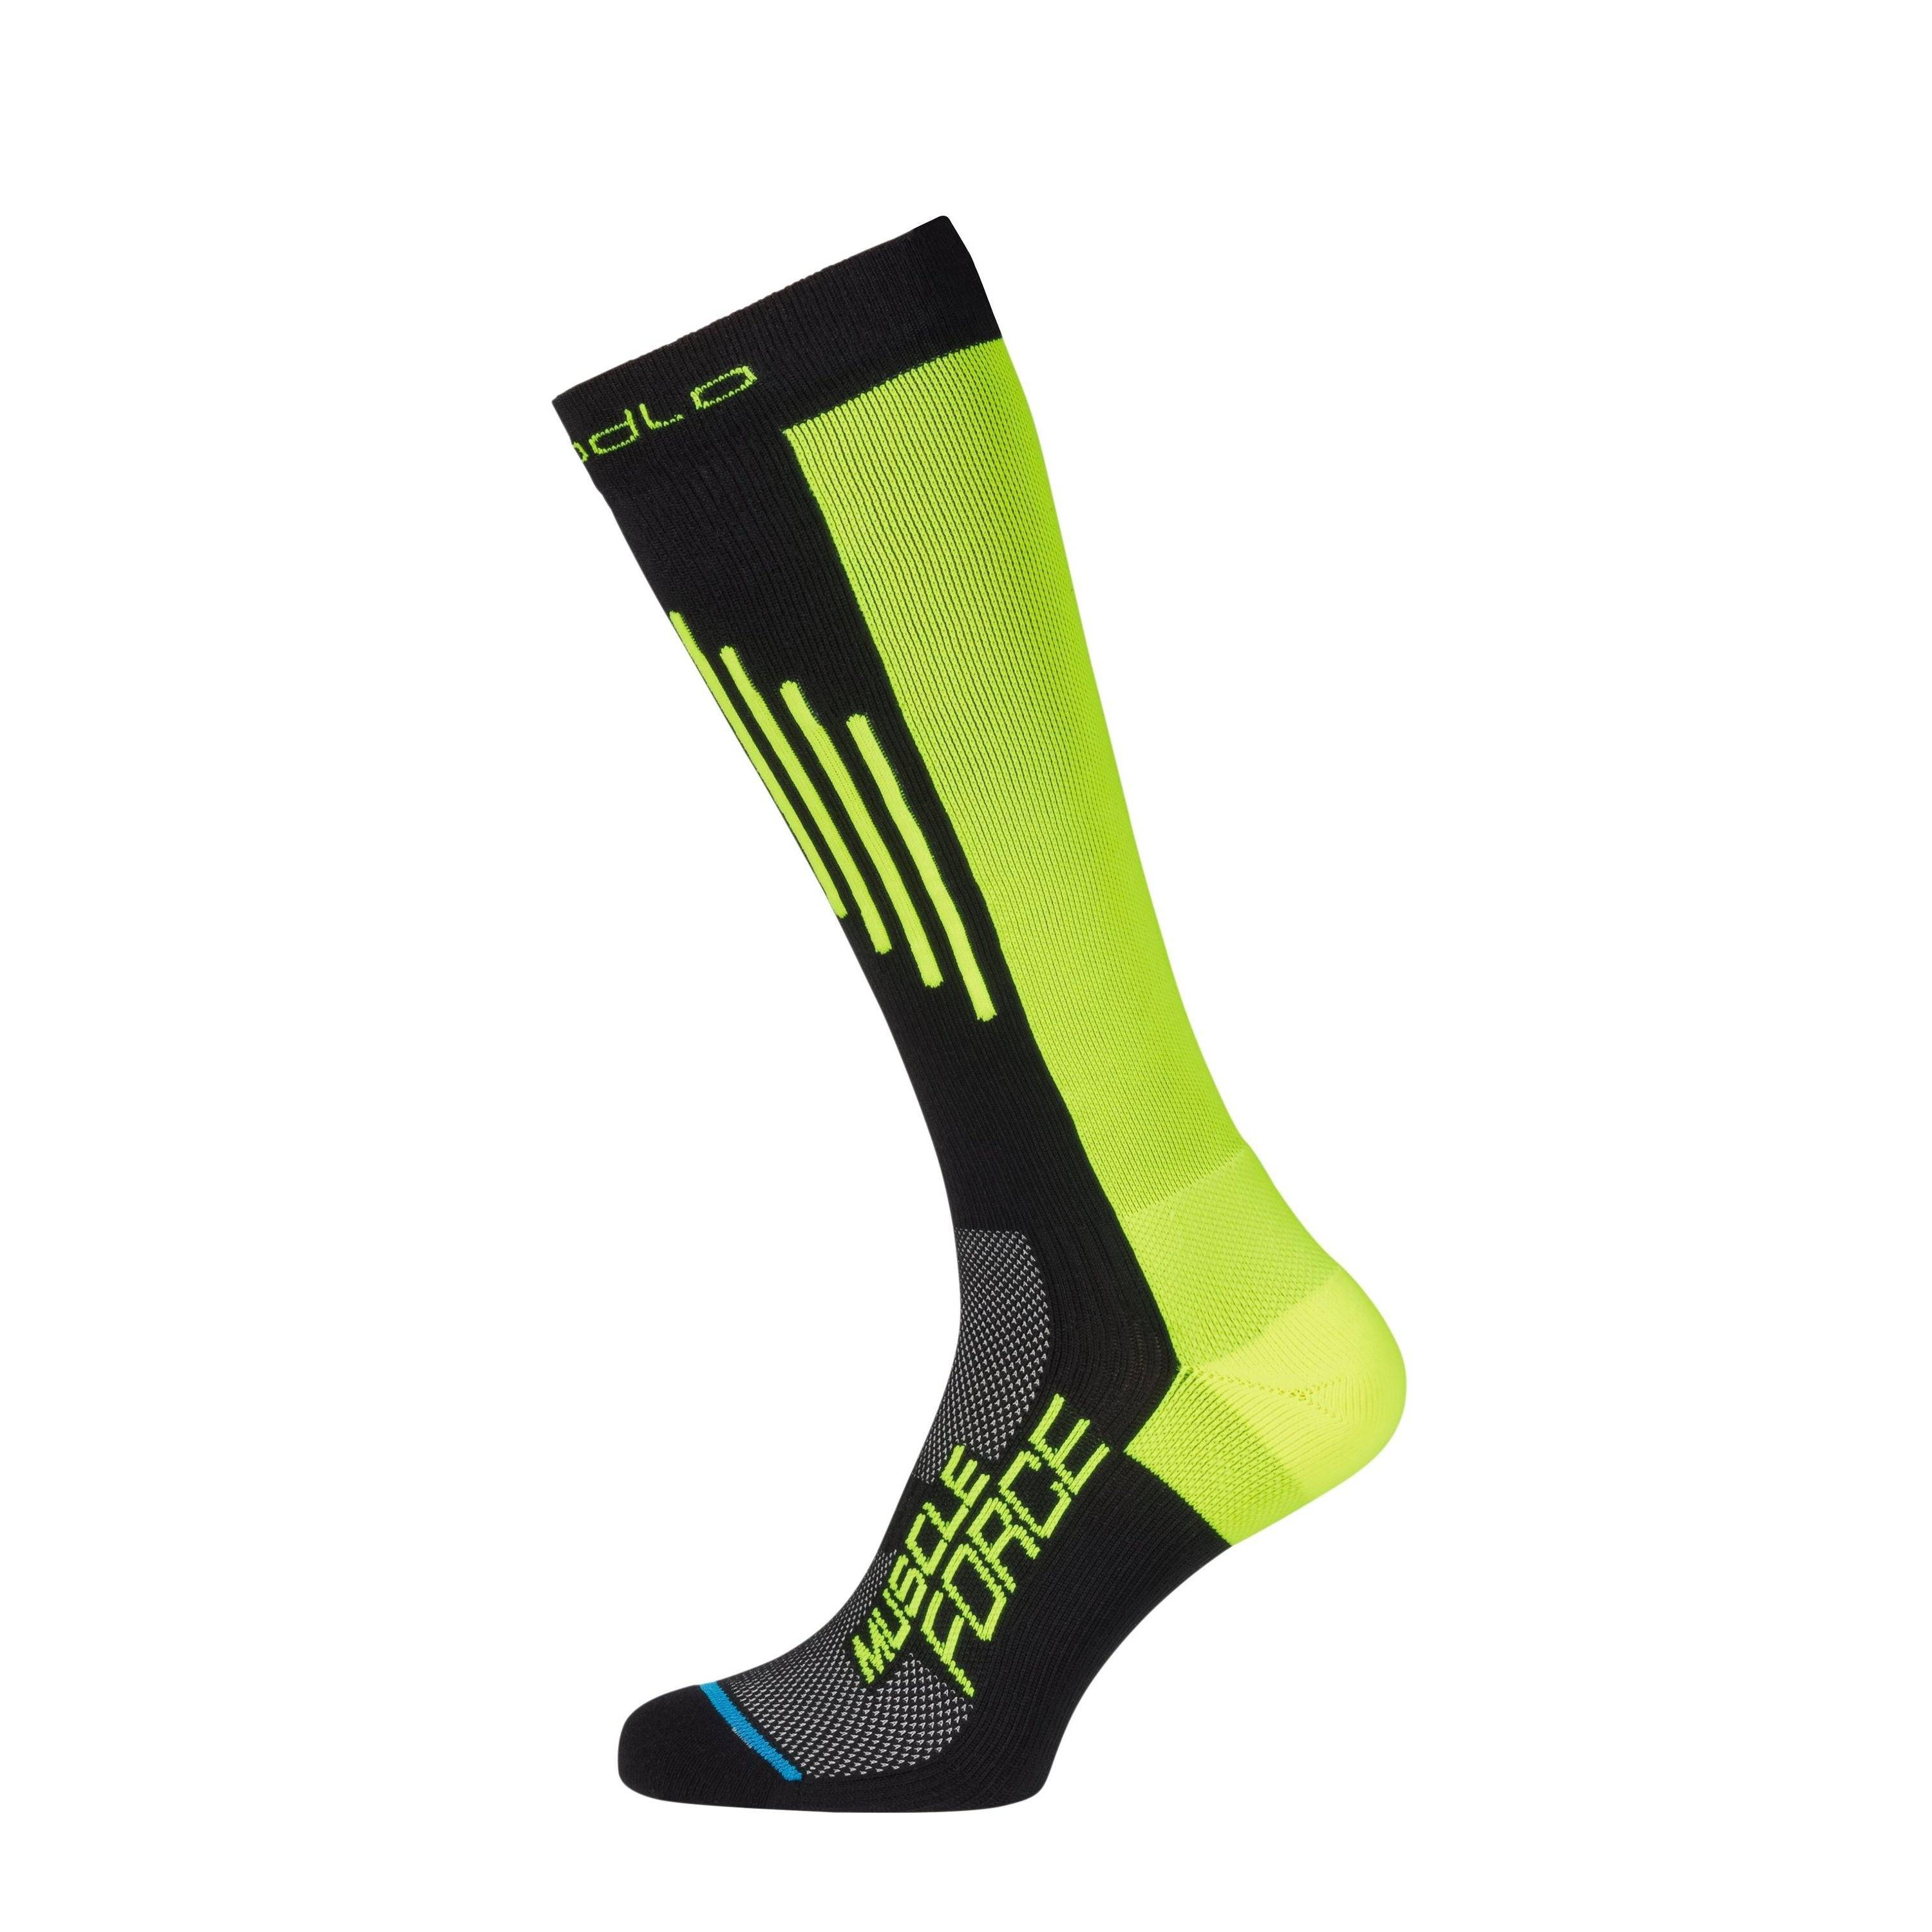 Odlo Chaussettes ultra-hautes MUSCLE FORCE LIGHT black - safety yellow taille: 39-41